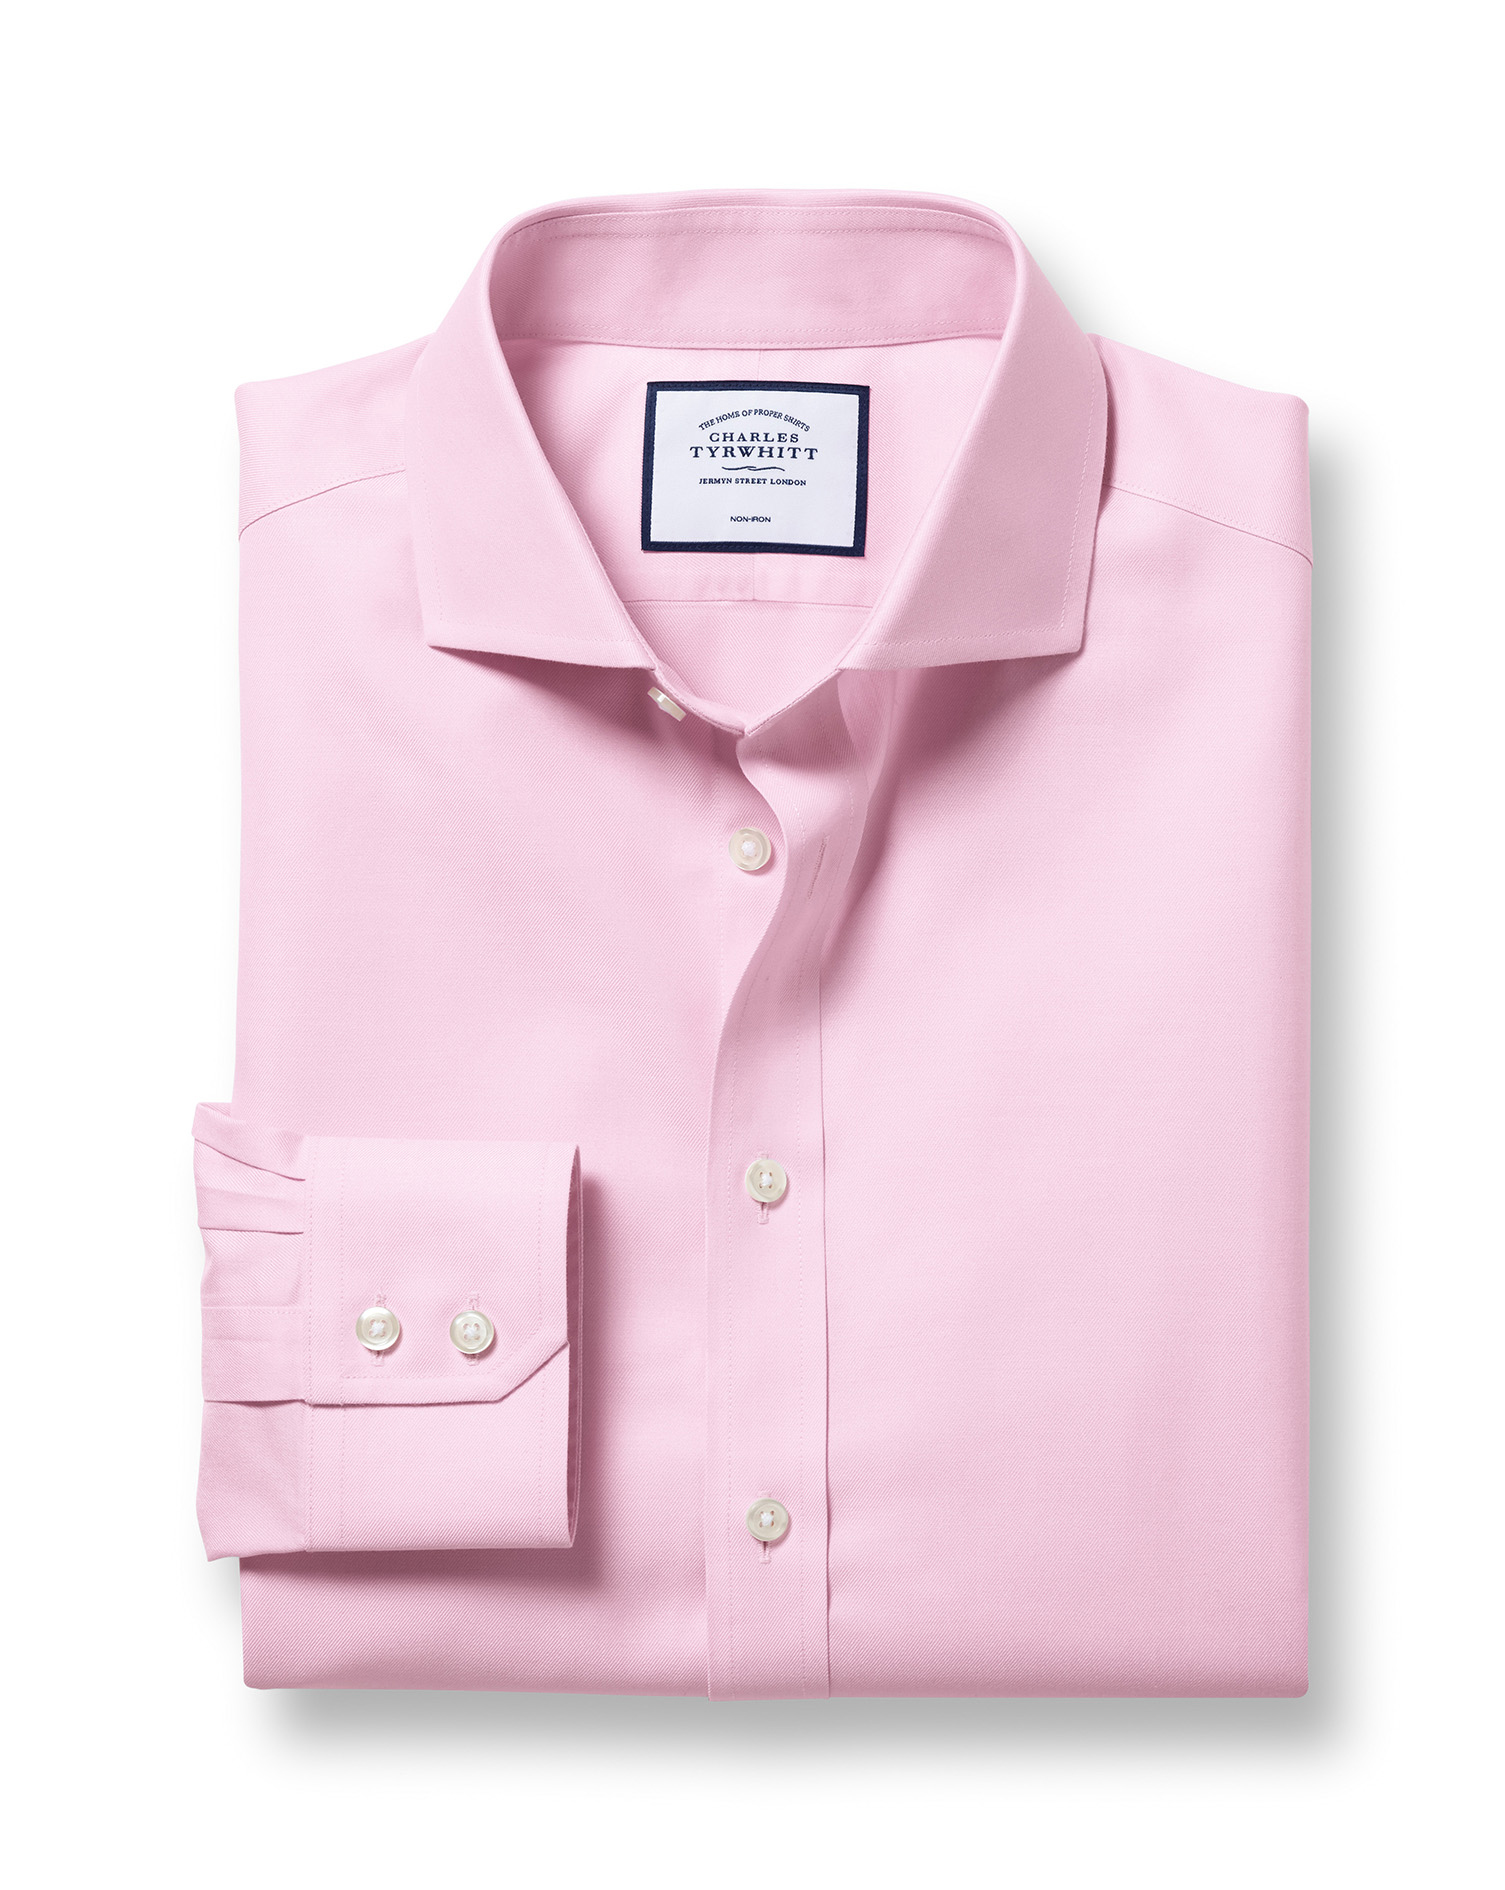 Slim Fit Cutaway Non-Iron Twill Pink Cotton Formal Shirt Double Cuff Size 17.5/36 by Charles Tyrwhit